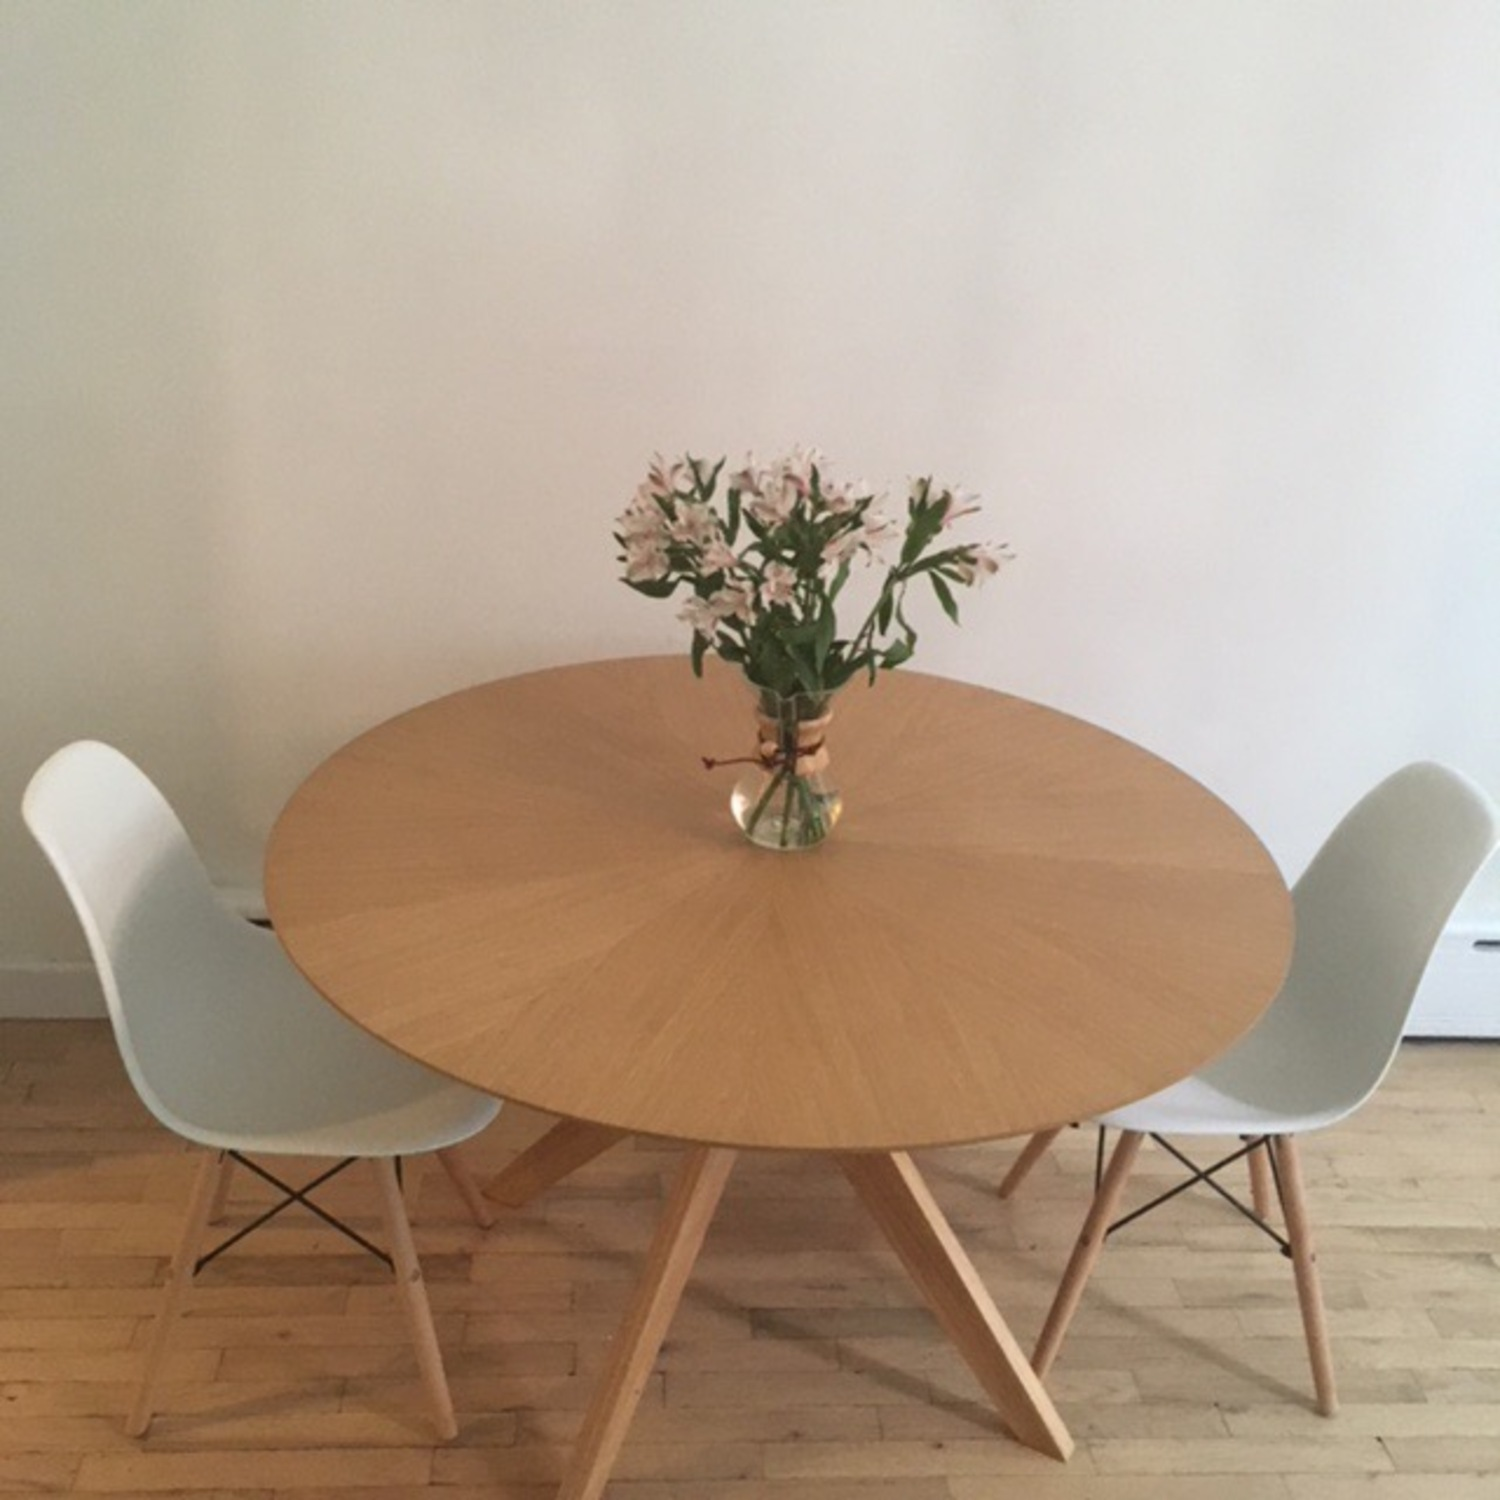 Scandinavian Stlye Dining Table and Chairs - image-0